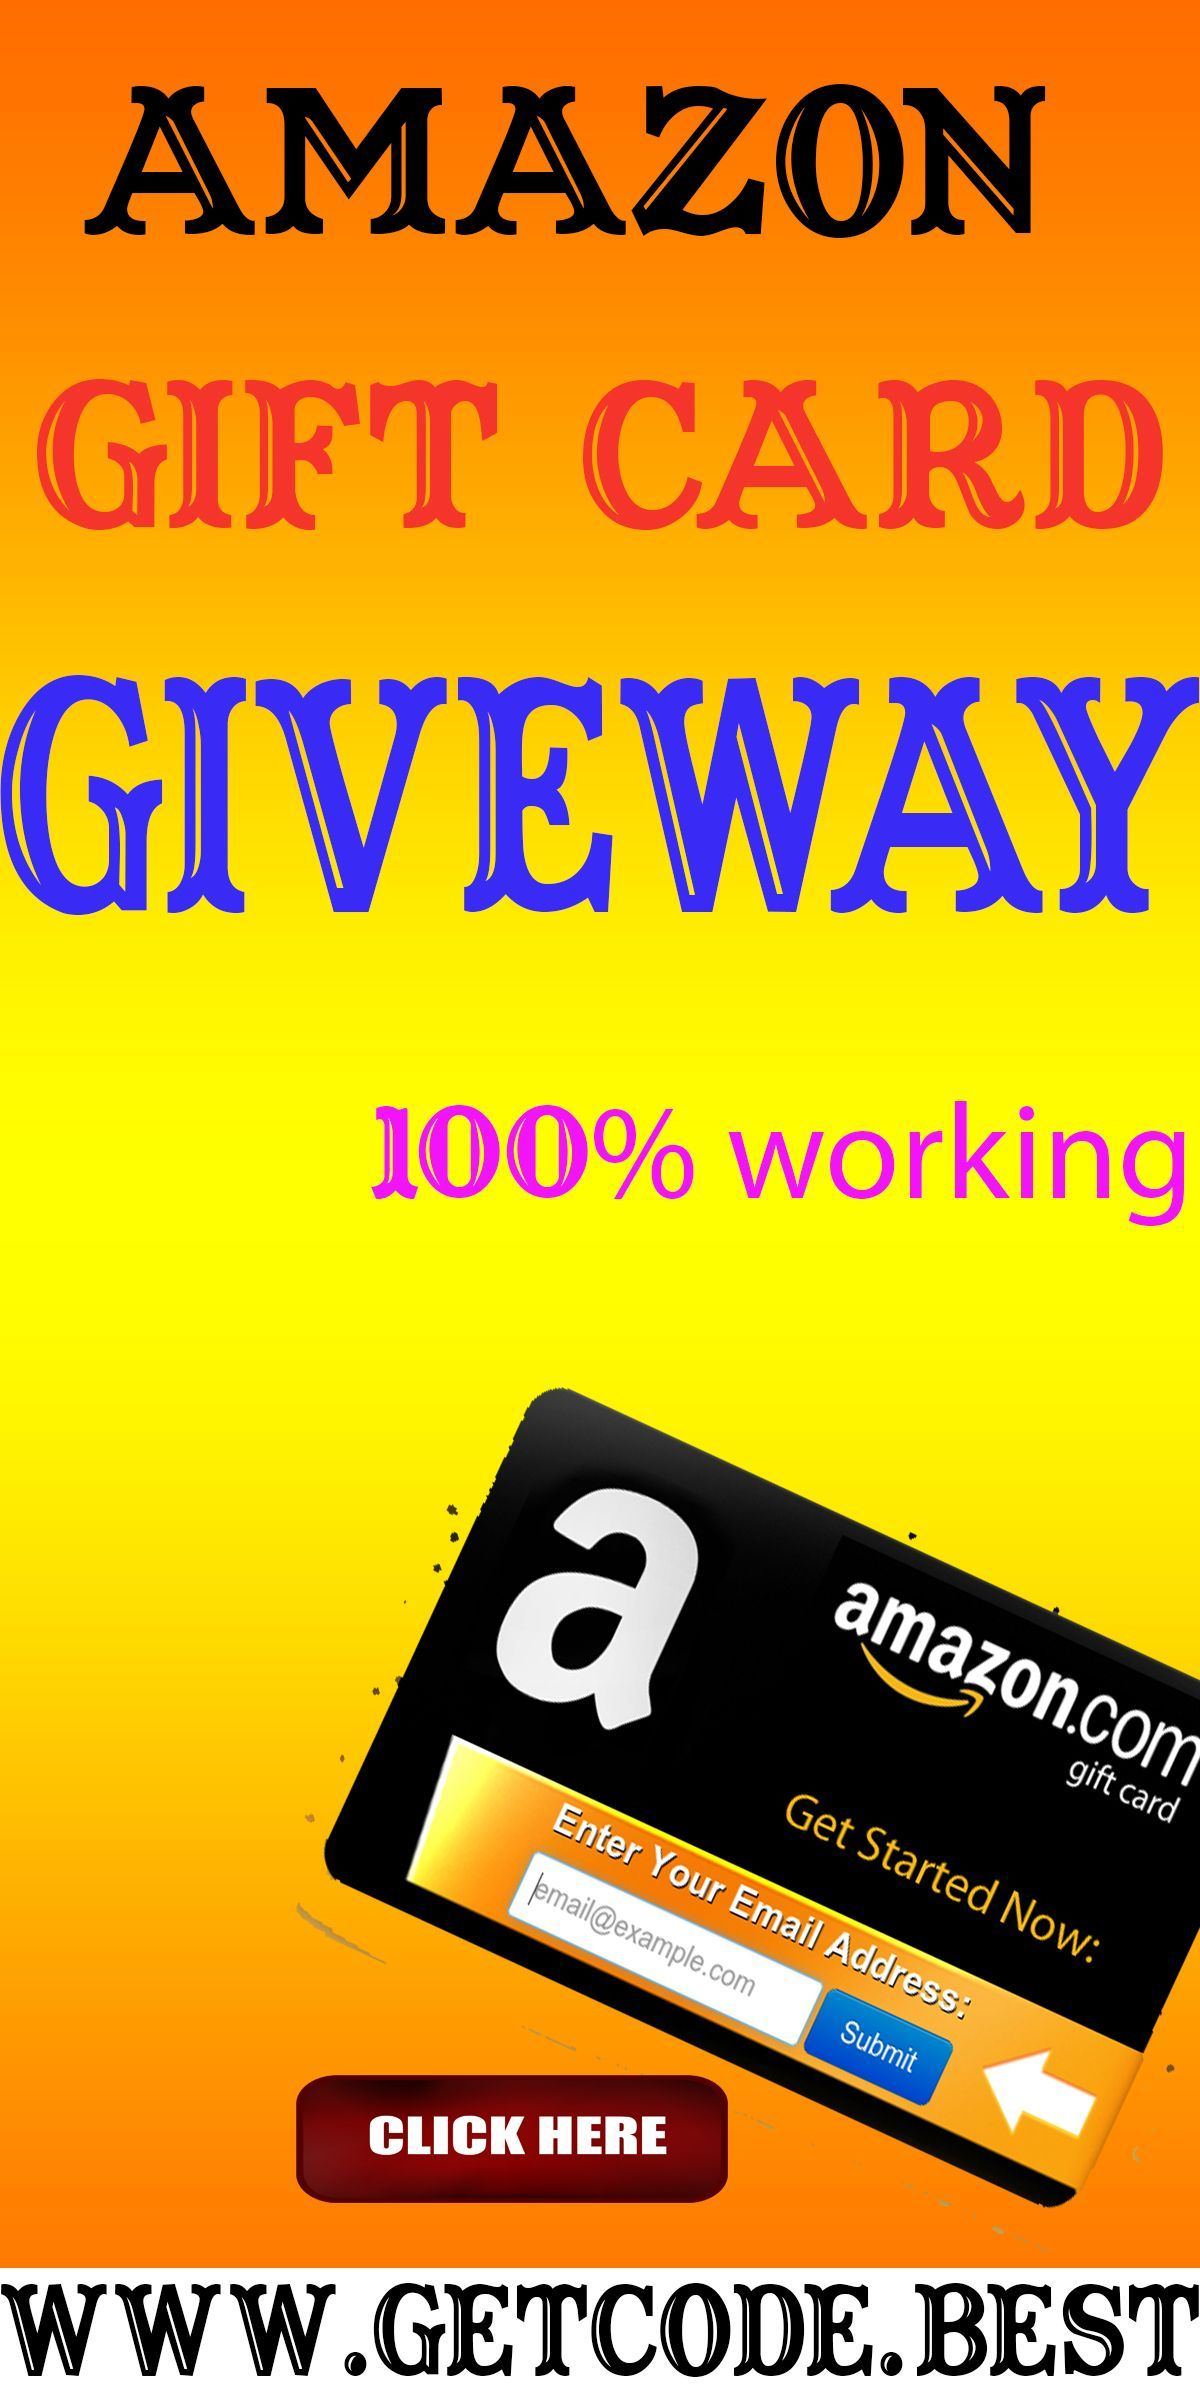 Get A 1000 Amazon Gift Card Completely Free Amazon Gift Card Free Amazon Gift Cards Amazon Gifts